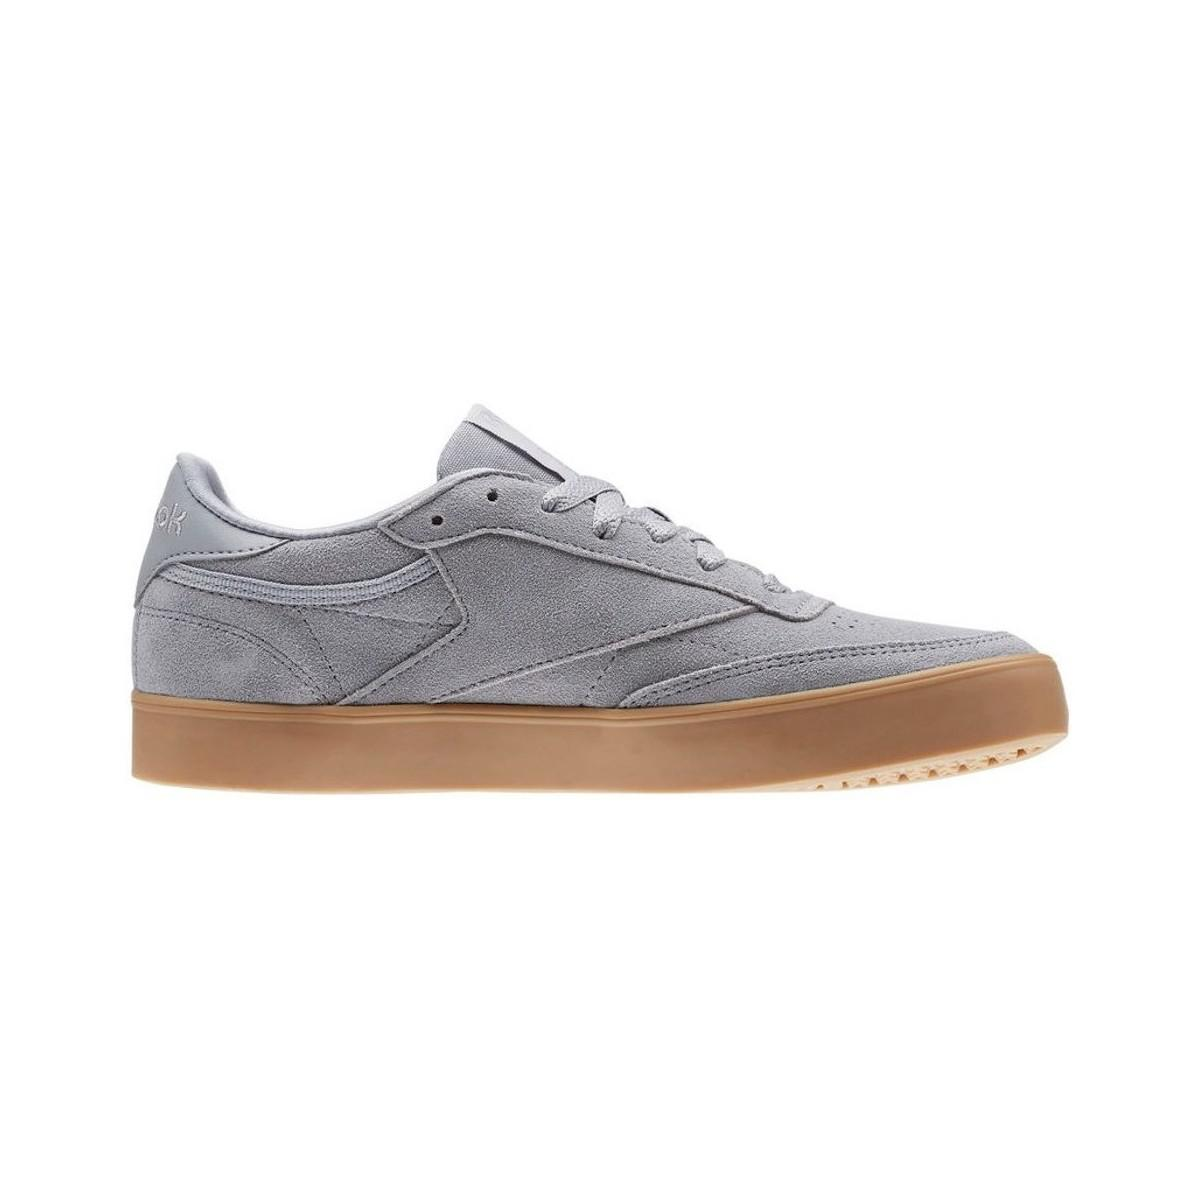 Reebok Club C 85 Fvs Women s Shoes (trainers) In Grey in Gray - Lyst 527288631